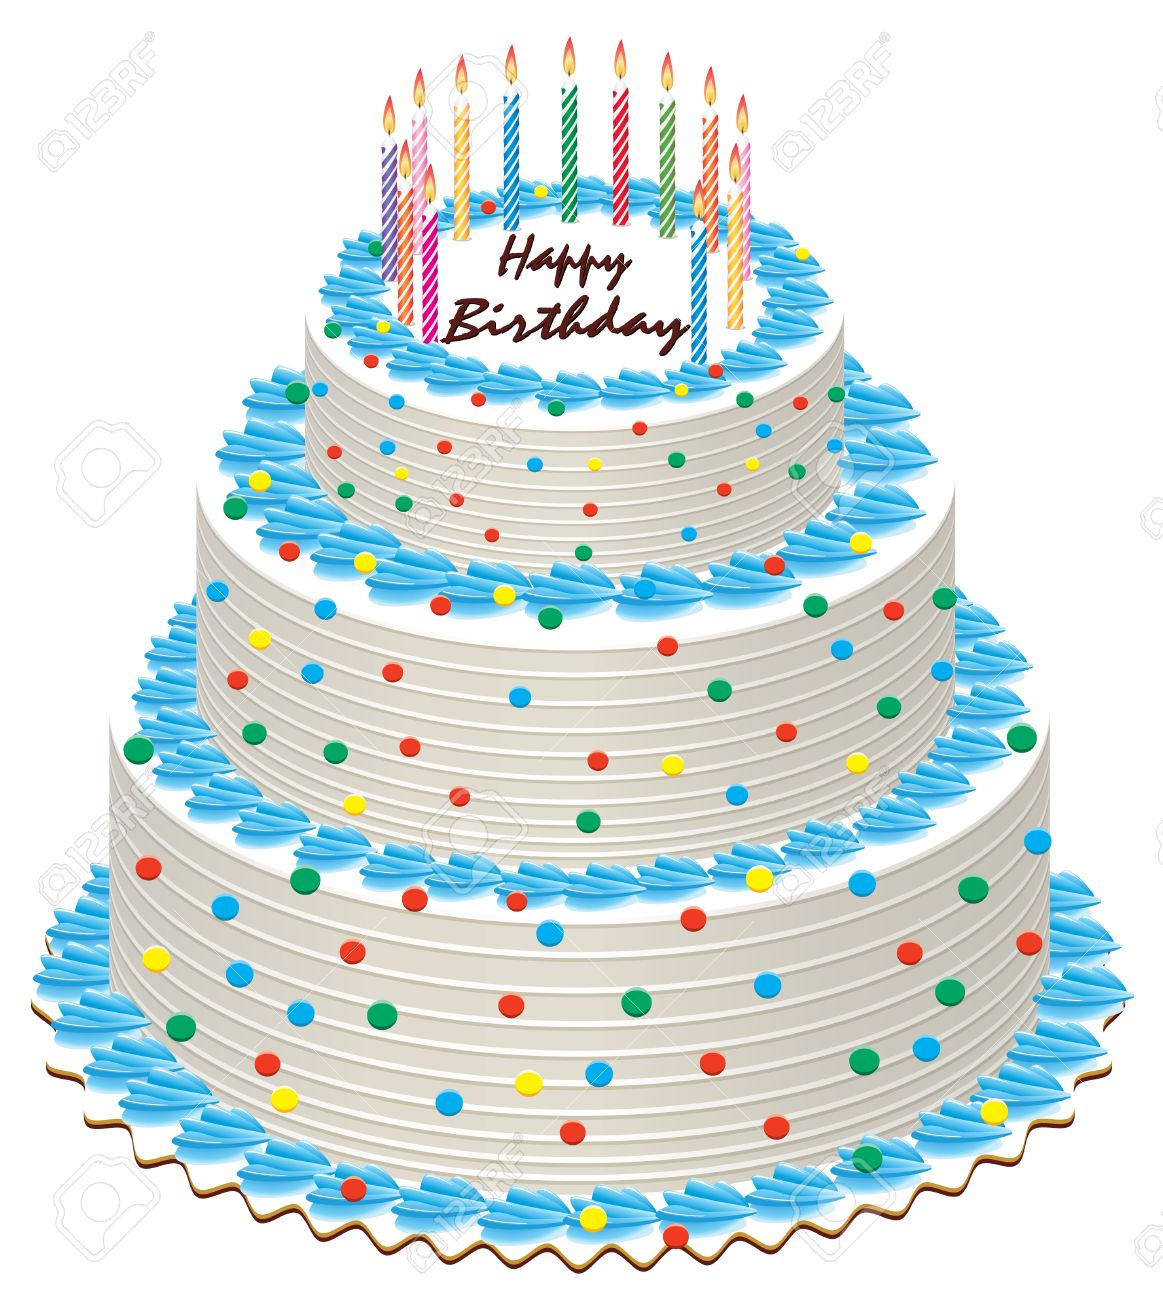 Big Illustration Of Birthday Cake With Burning Candles Stock Vector